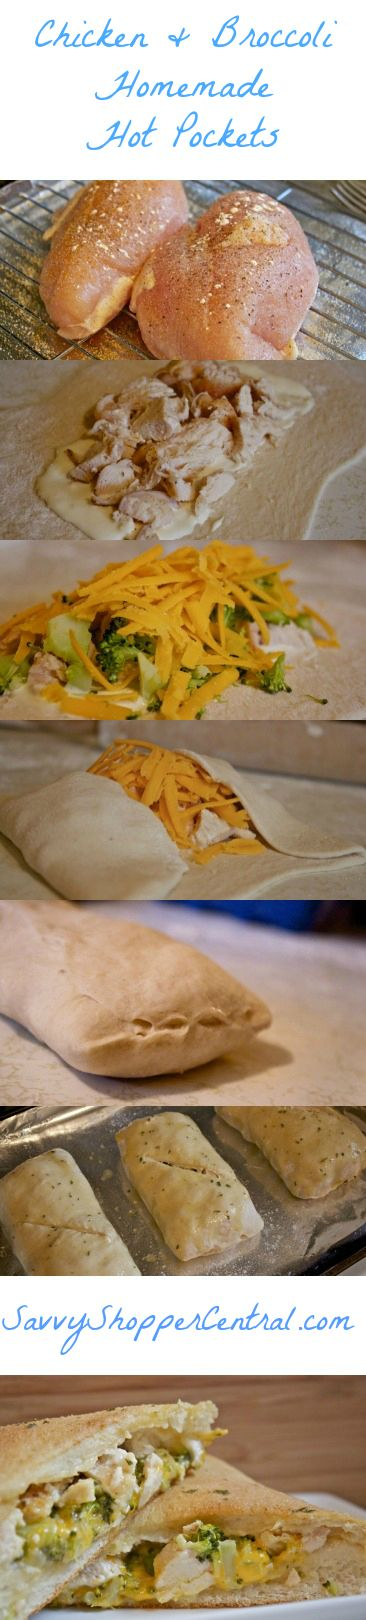 Homemade Chicken & Broccoli Pockets